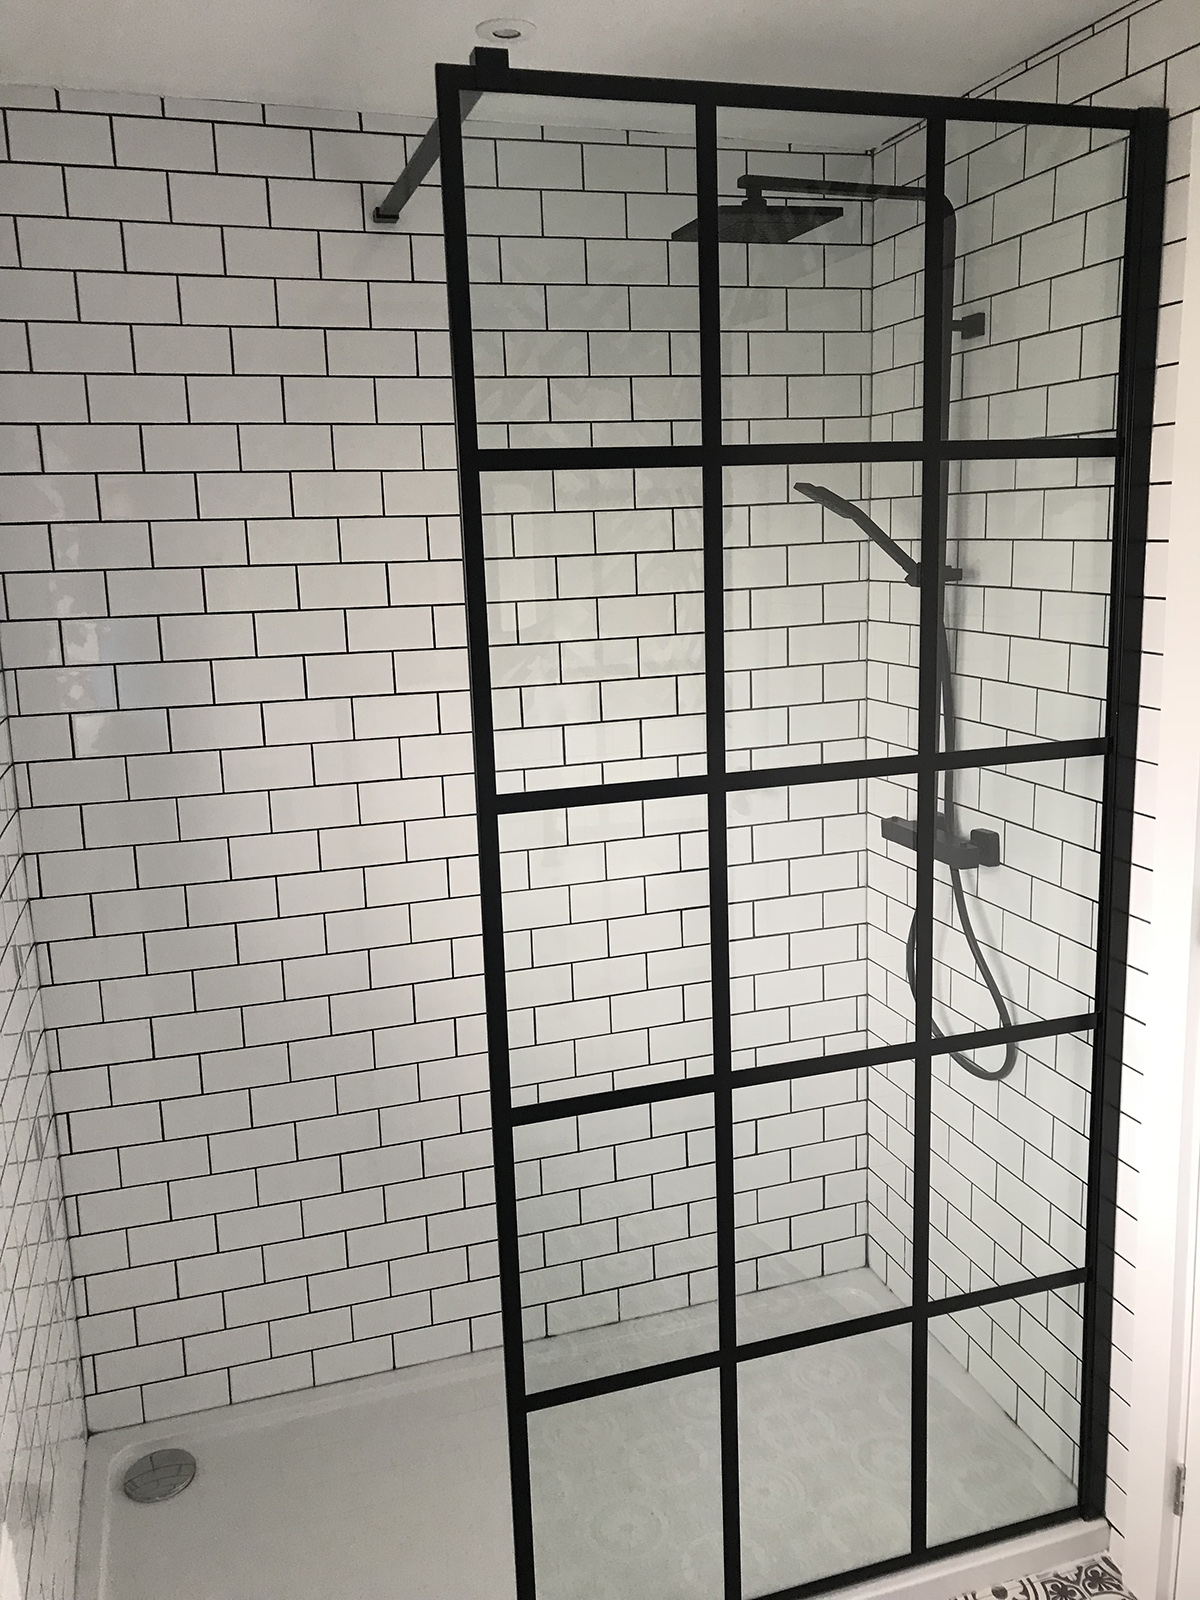 Frame Shower screen by Drench. White chapel brick tiles, Walls and Floors. Instinct low profile shower tray, Gs Centre Ltd. Shower, Victoria Plum.